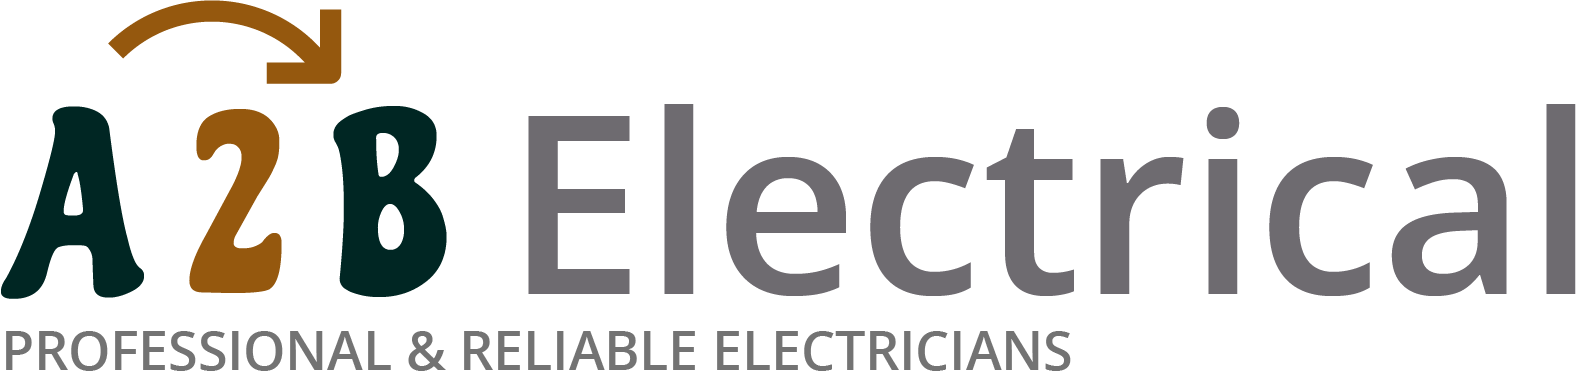 If you have electrical wiring problems in Shepherds Bush, we can provide an electrician to have a look for you.